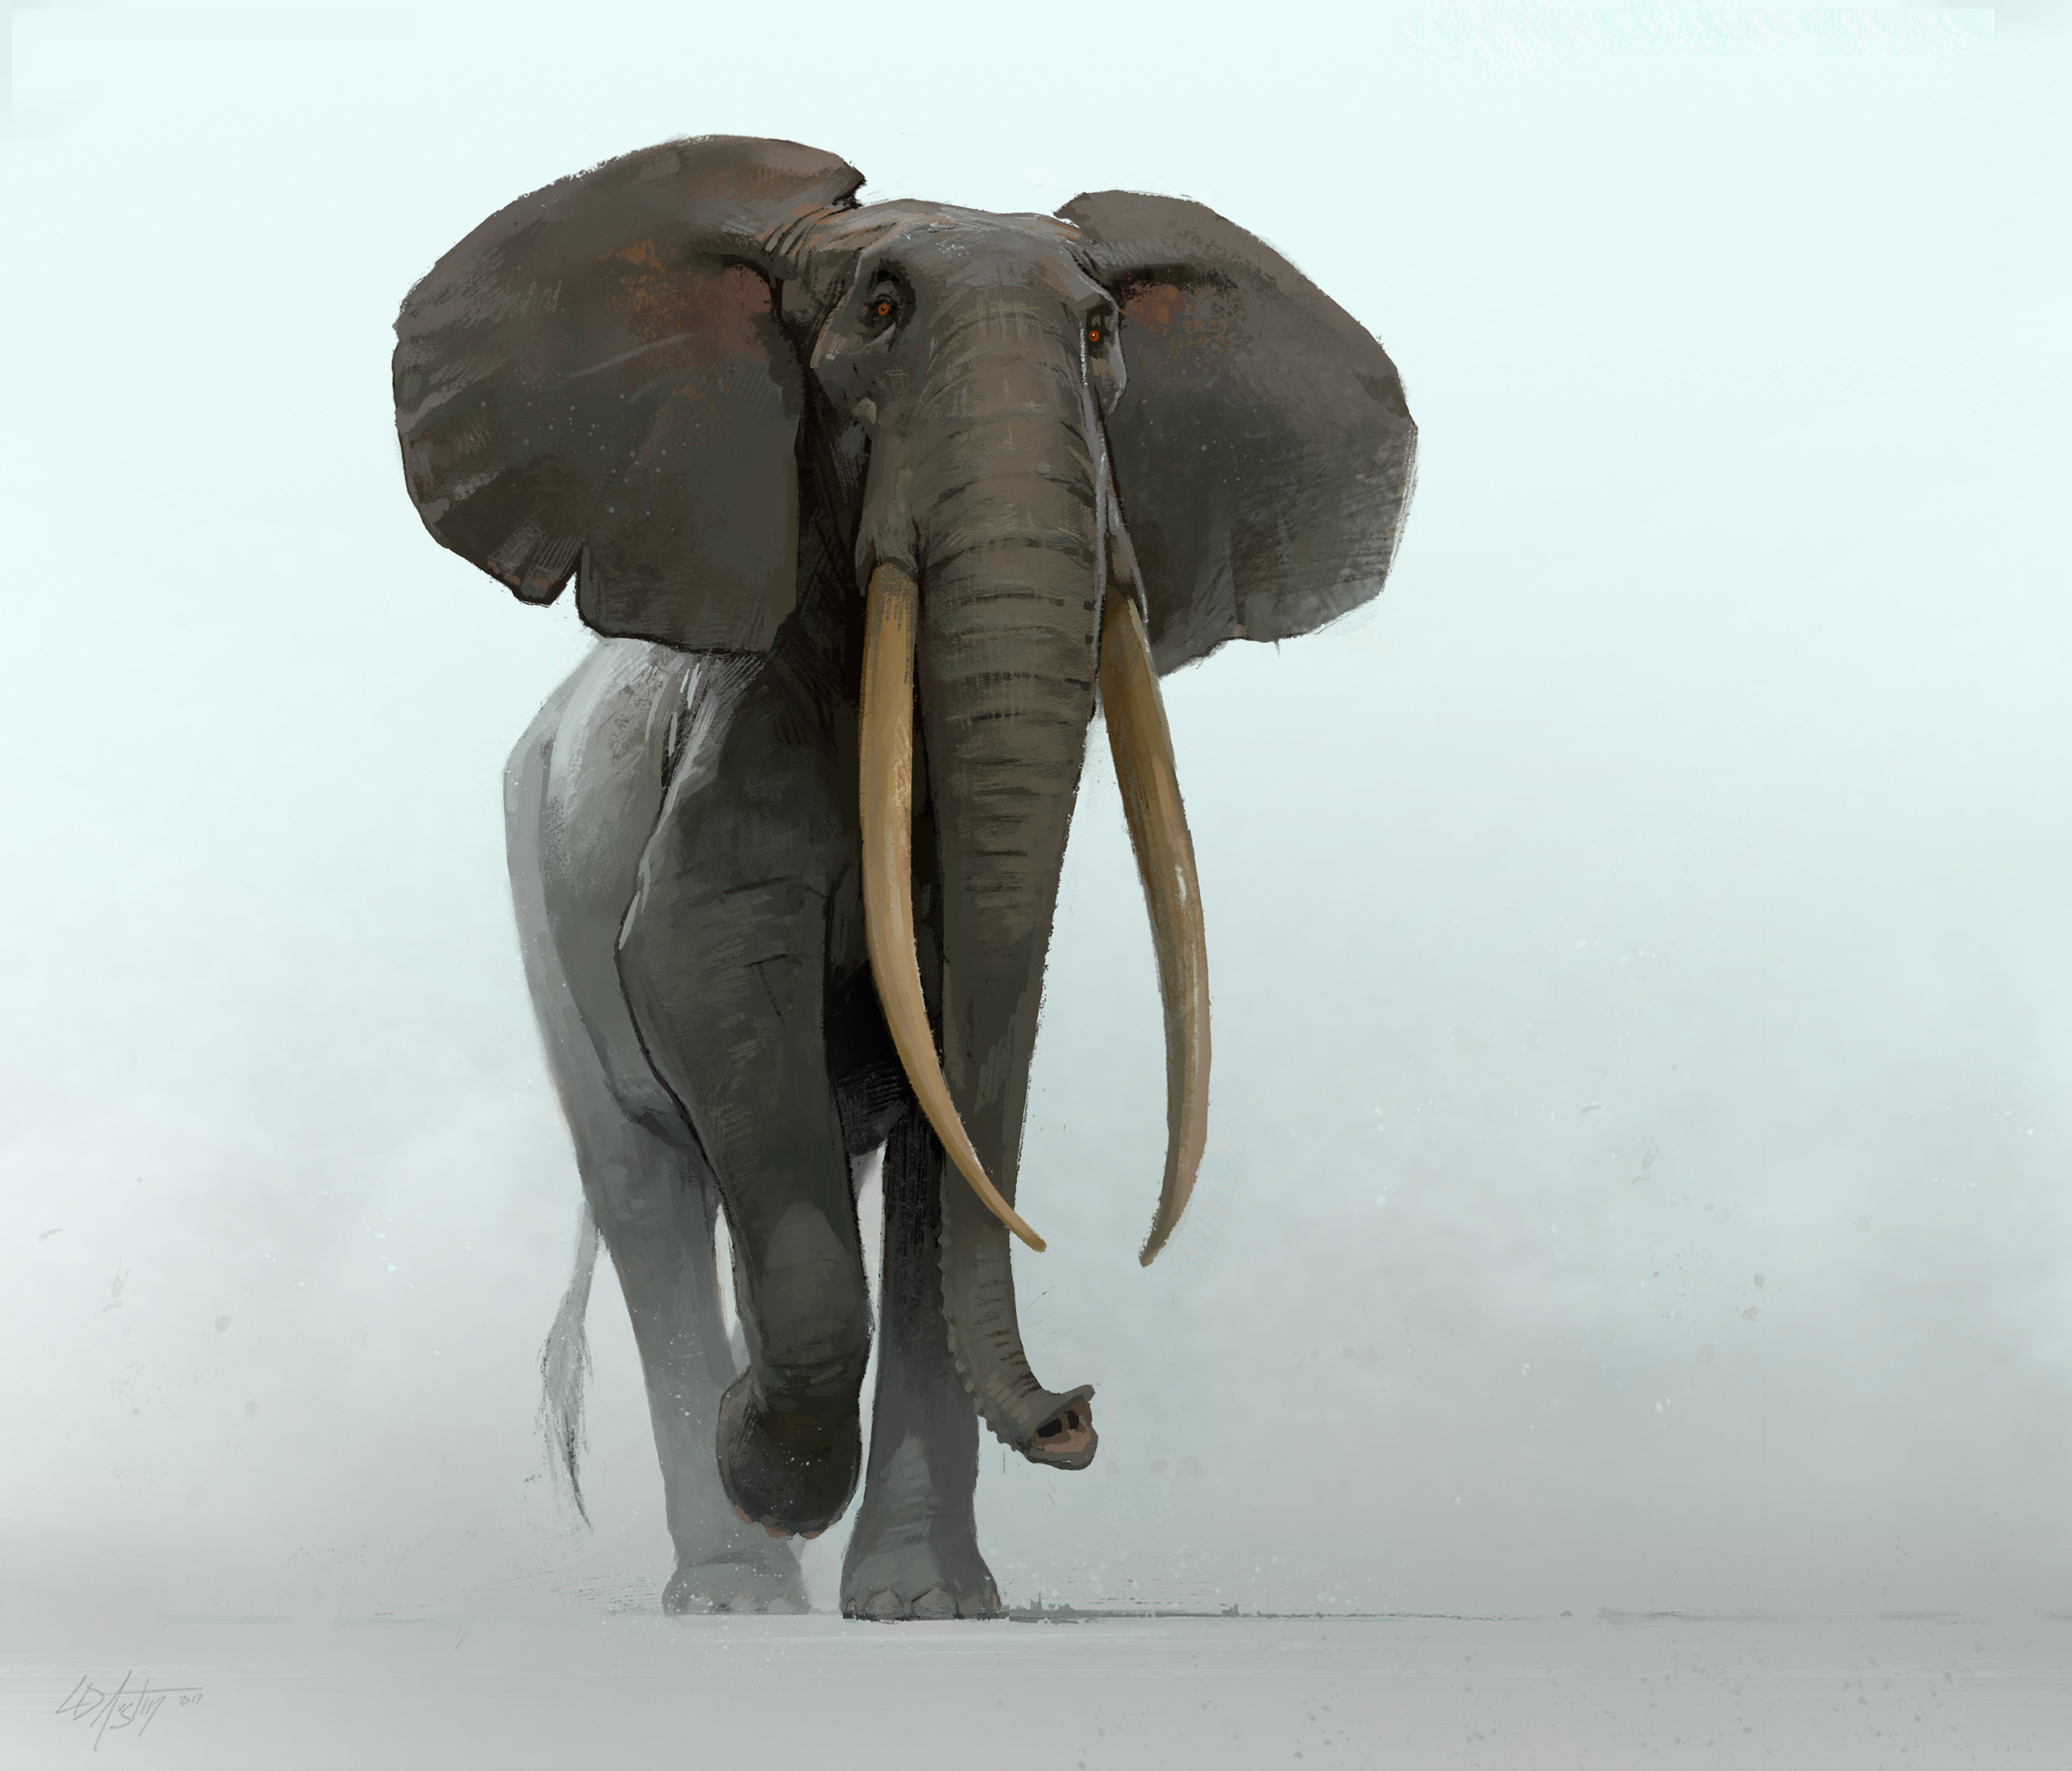 indanger-africanforestelephant.jpg